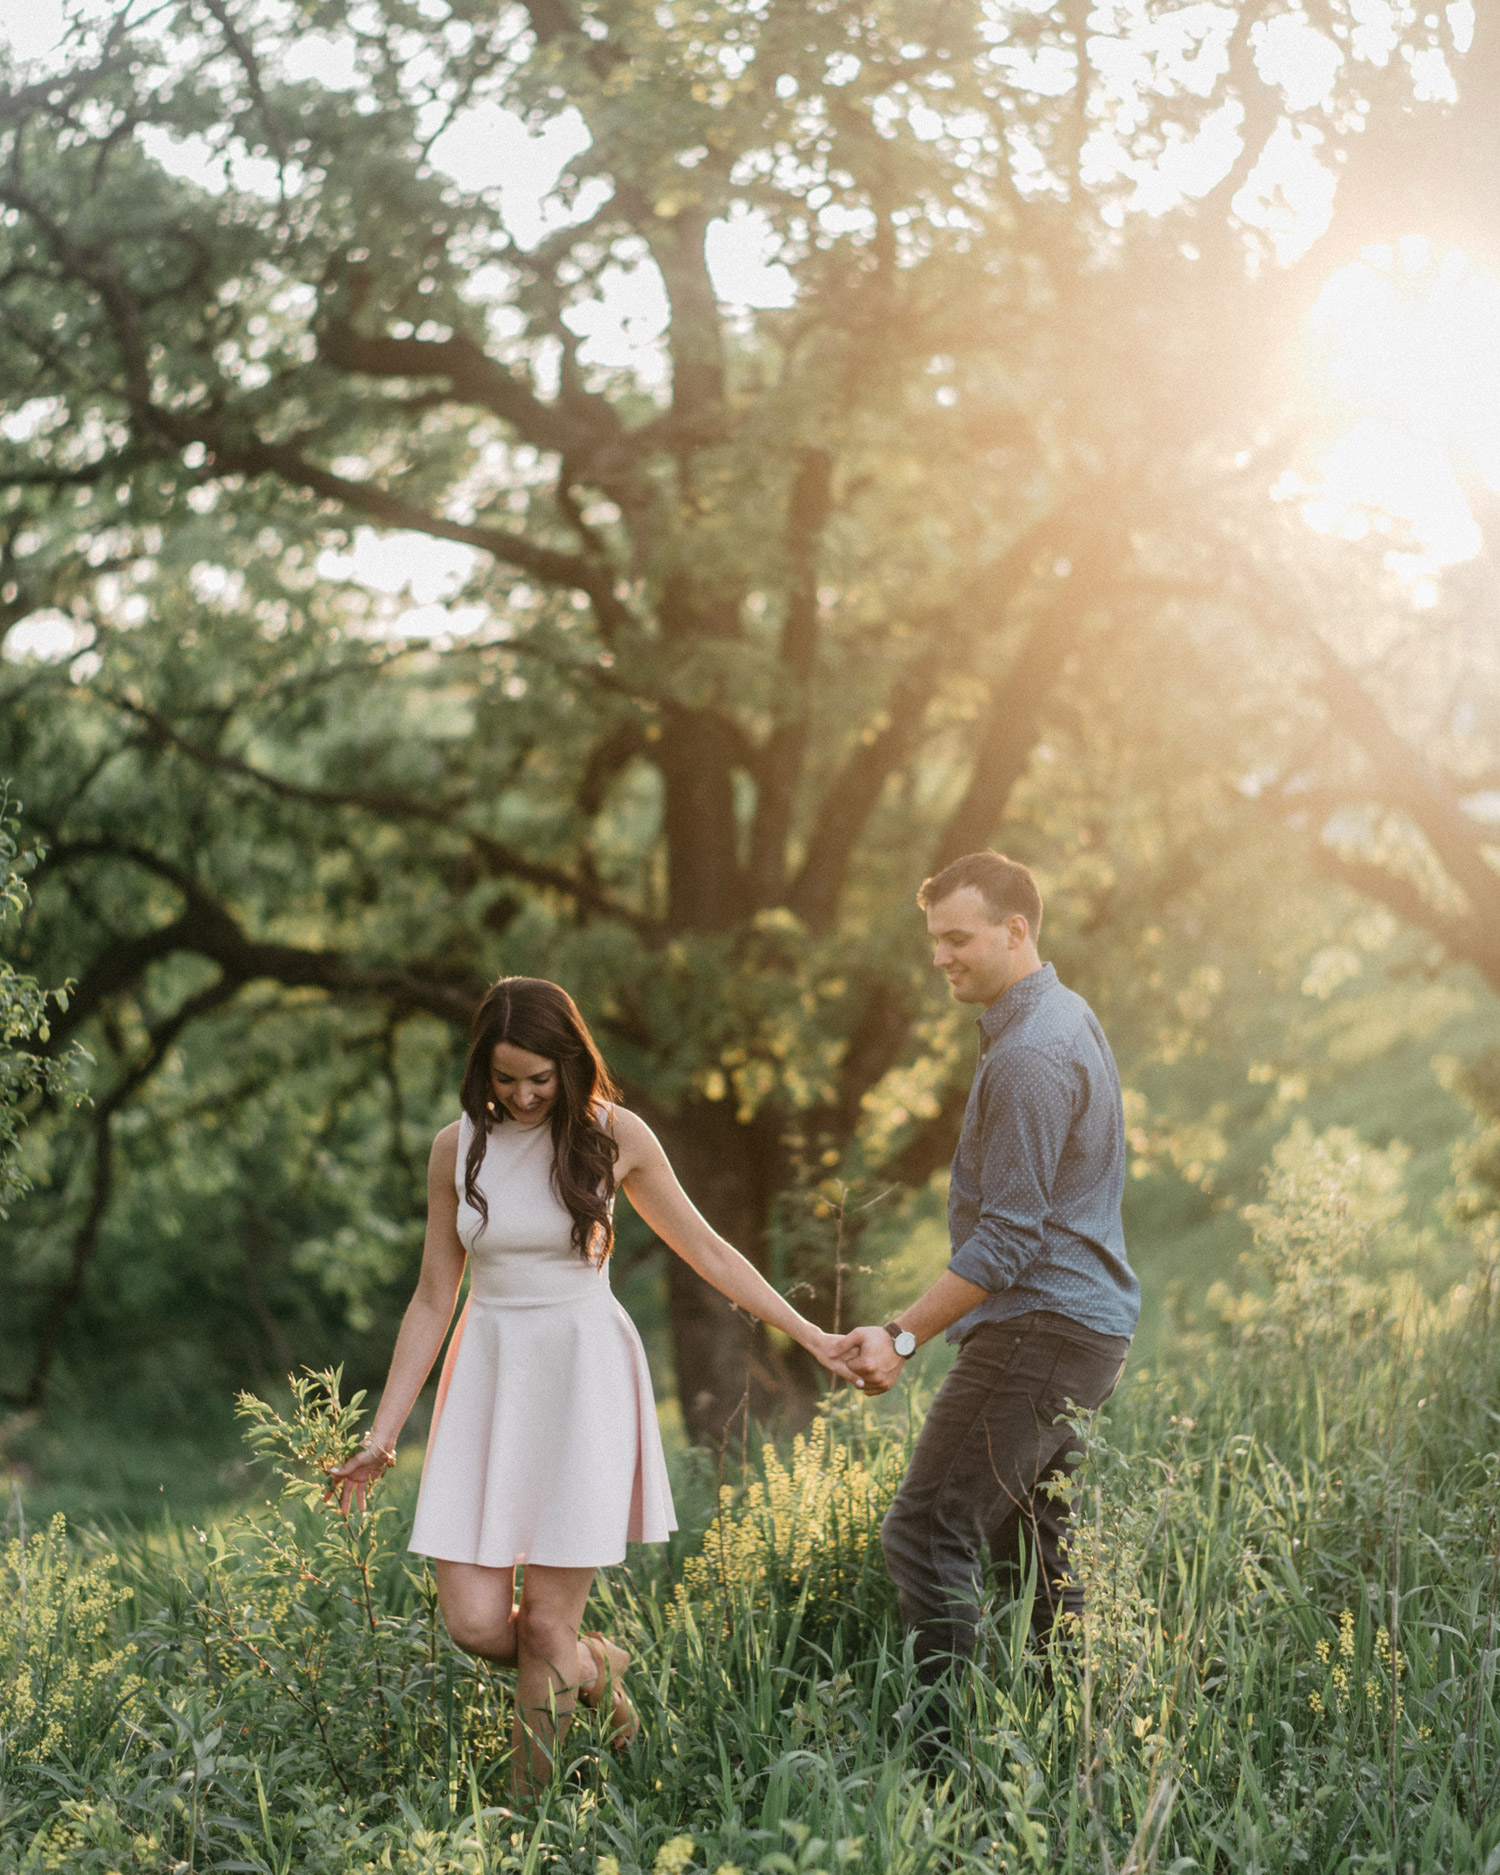 Minnesota Summer Engagement photography by geneoh photography